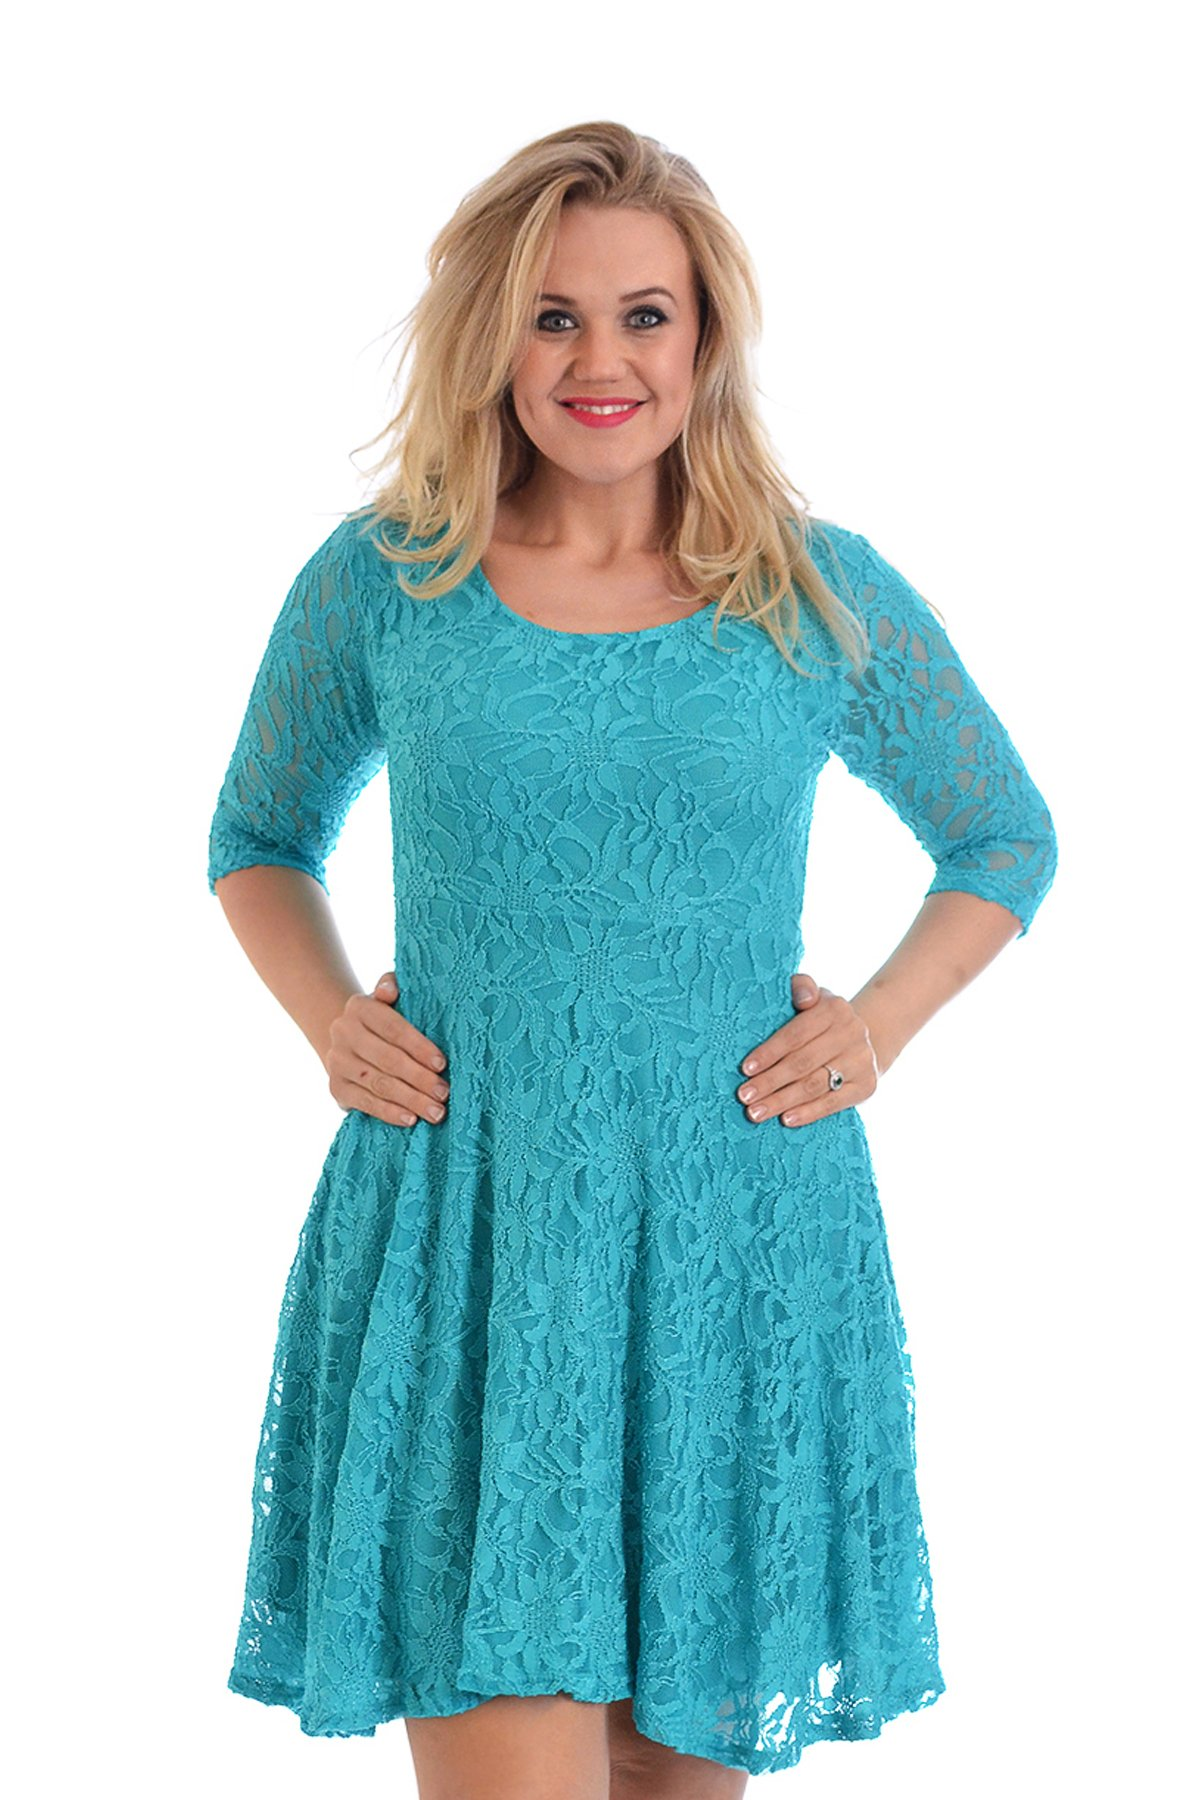 Nouvelle Collection Womens Plus Size Dress Ladies Skater Style Floral Lace Flared Party Wear Round Neck Turquoise US Size 14